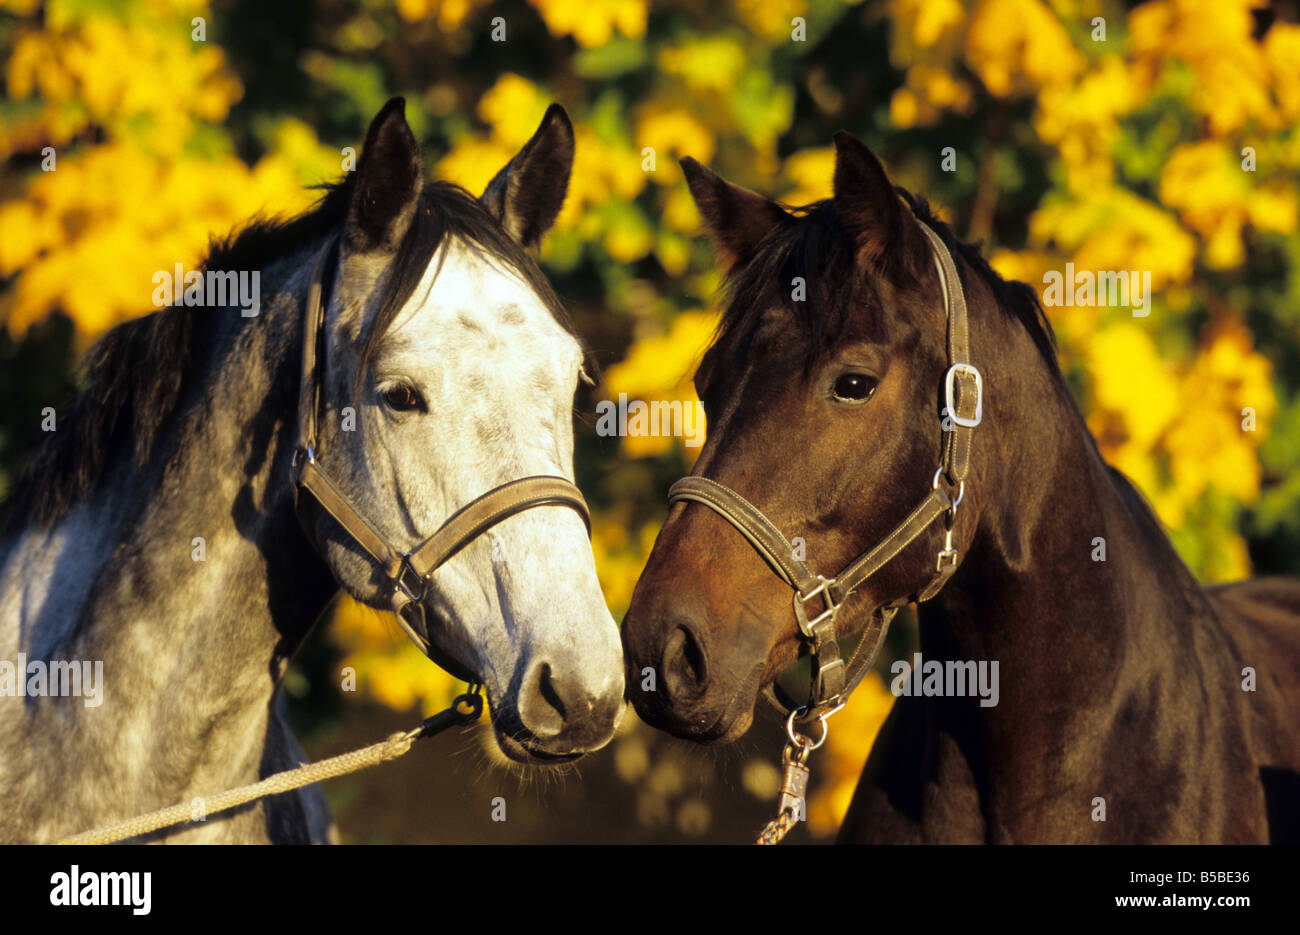 German Warmblood (Equus caballus). Two individuals head to head - Stock Image